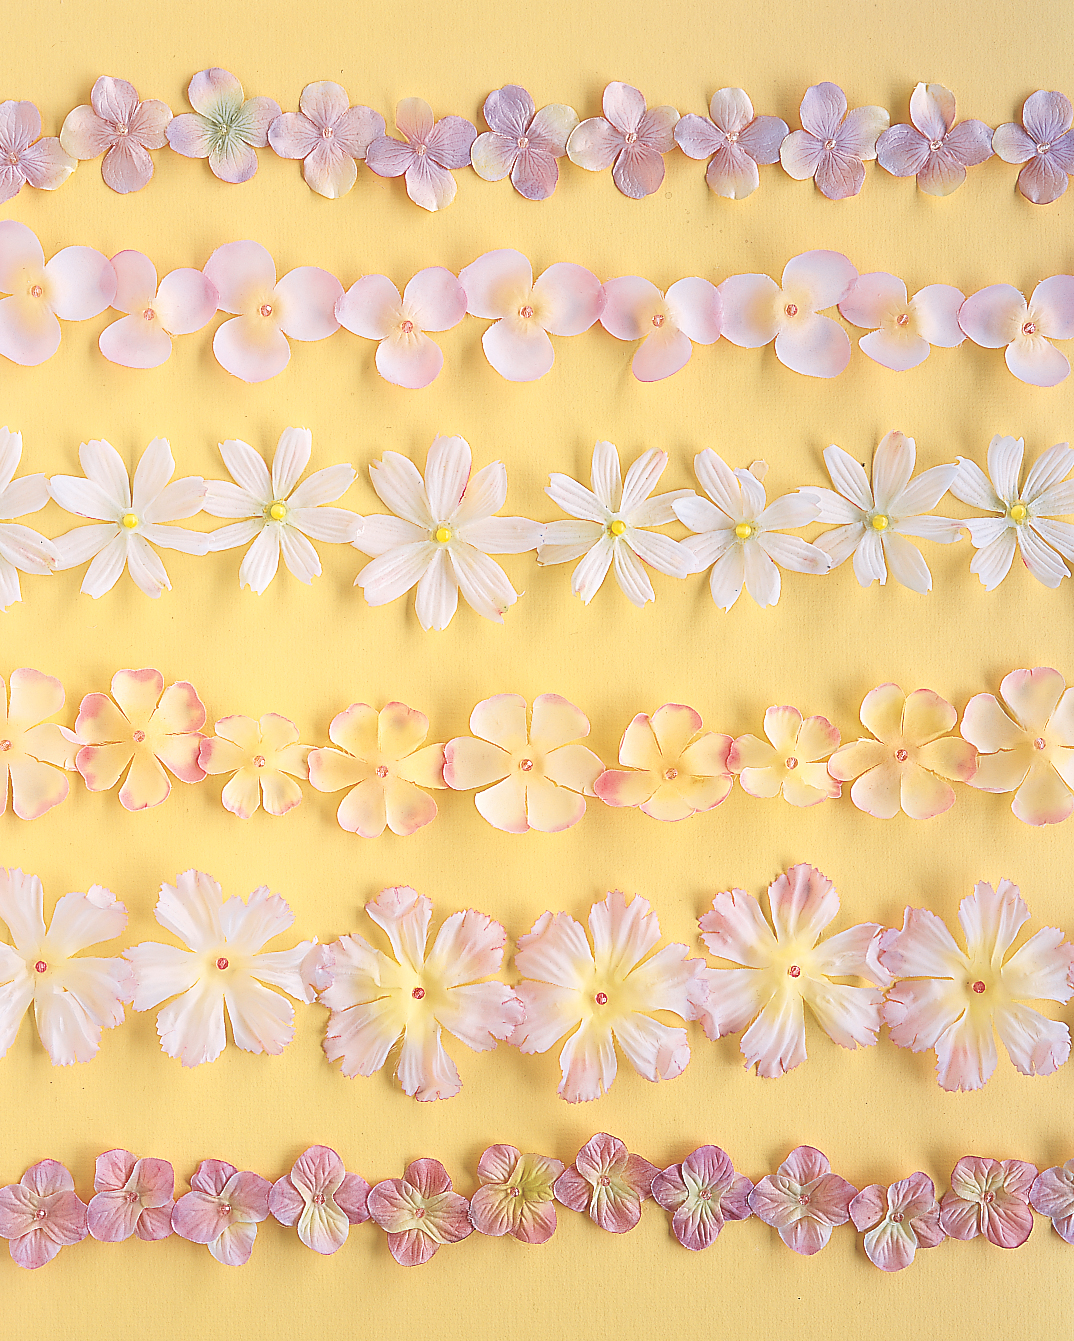 diy-beach-wedding-ideas-silk-petal-garlands-sp03-0615.jpg